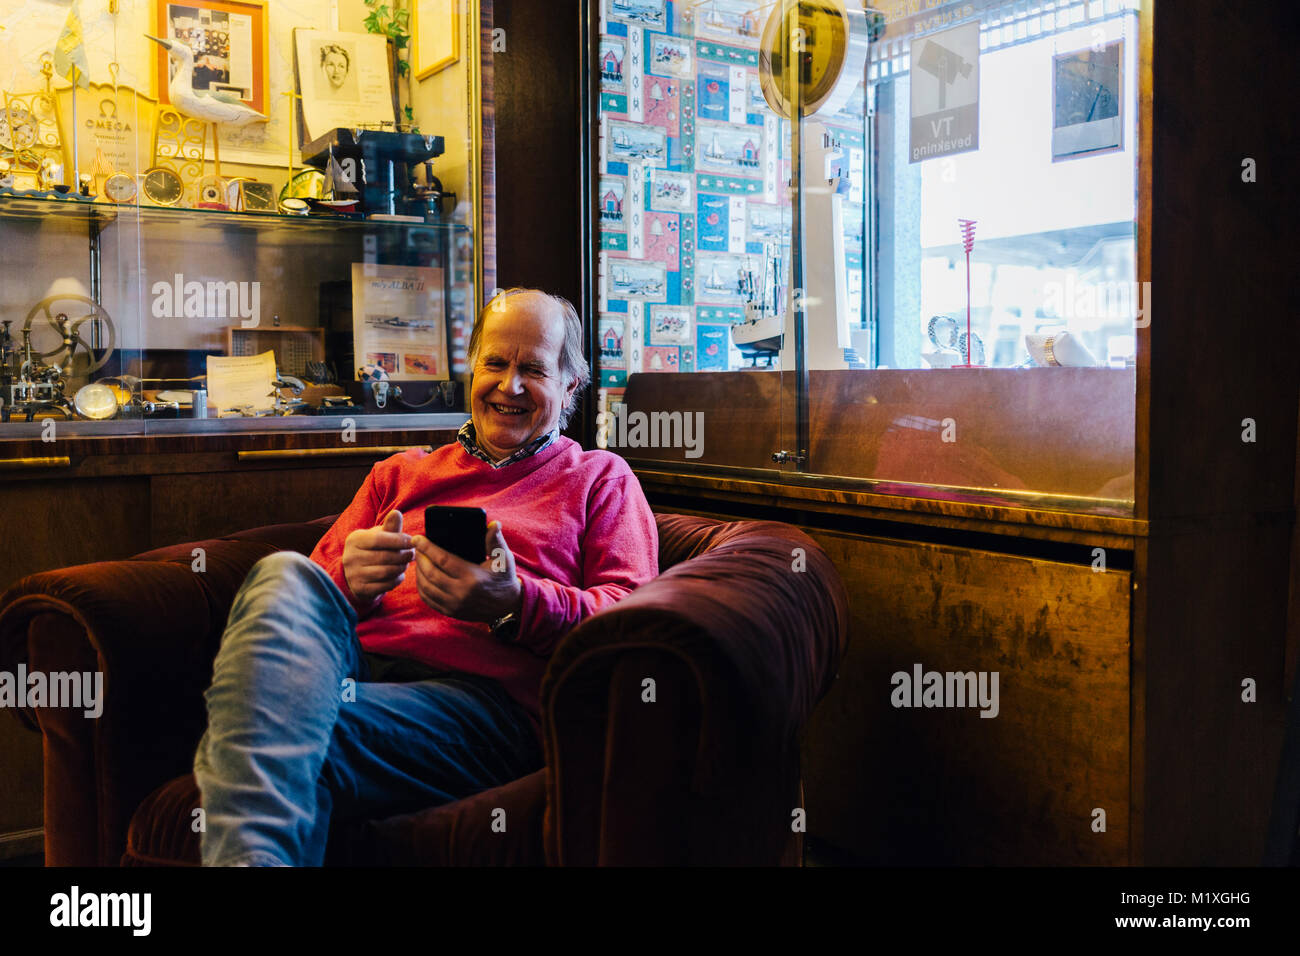 Man in armchair with smart phone in Sweden - Stock Image